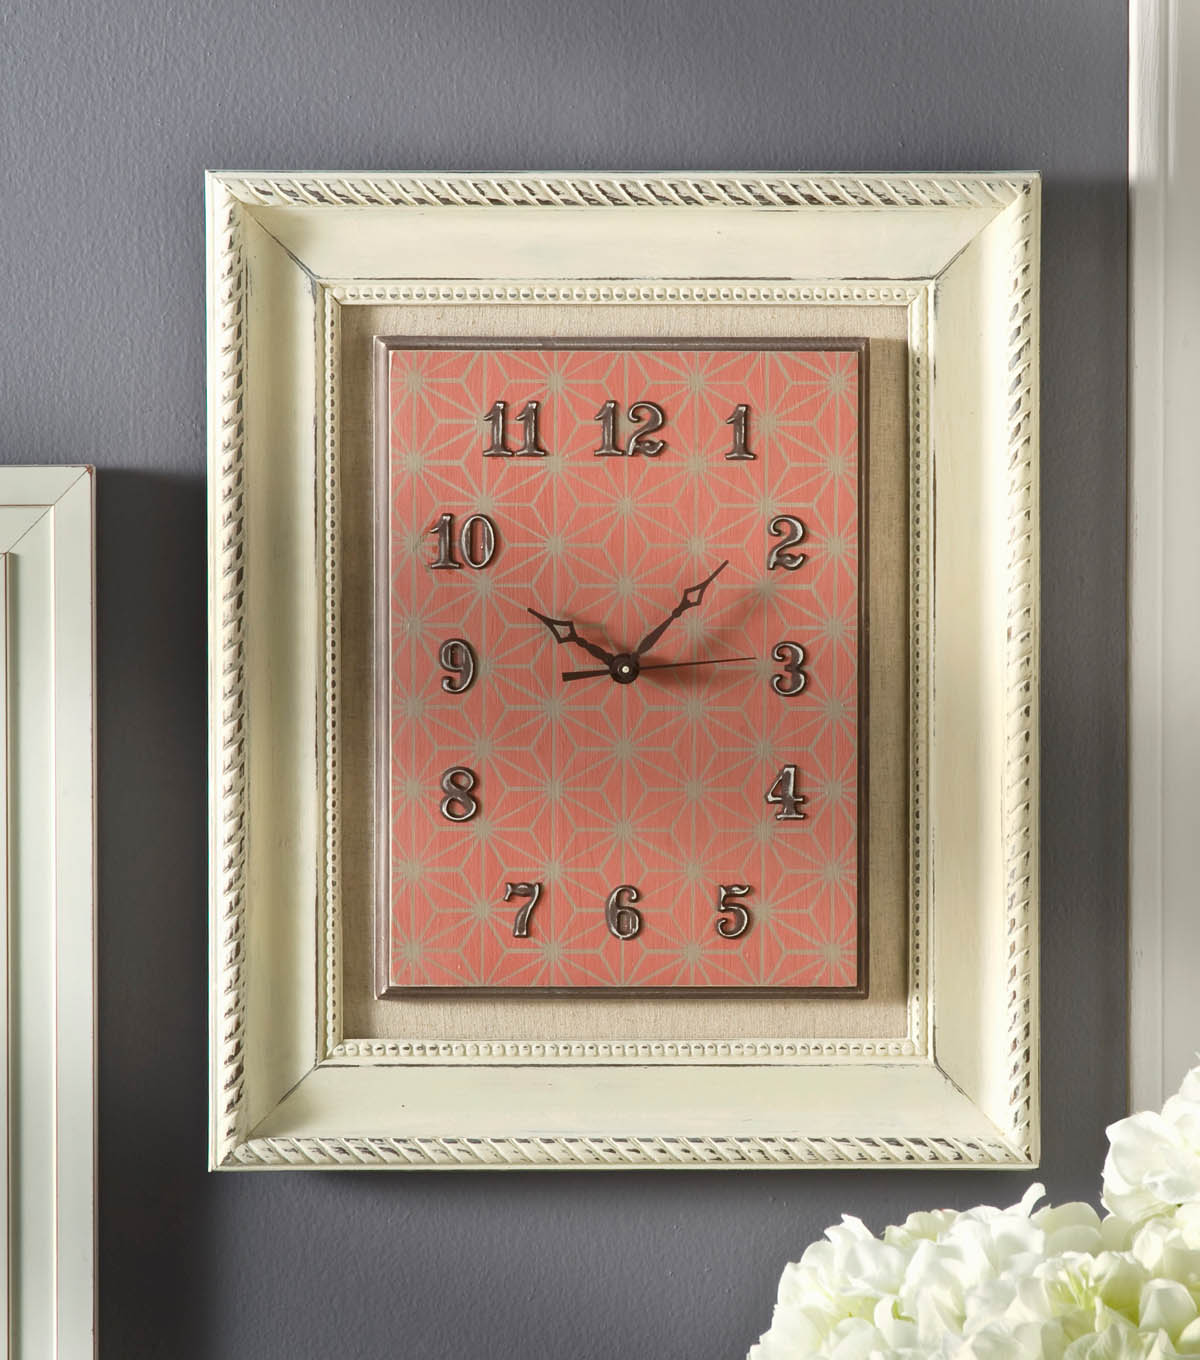 Home Decor Chalk Framed Clock